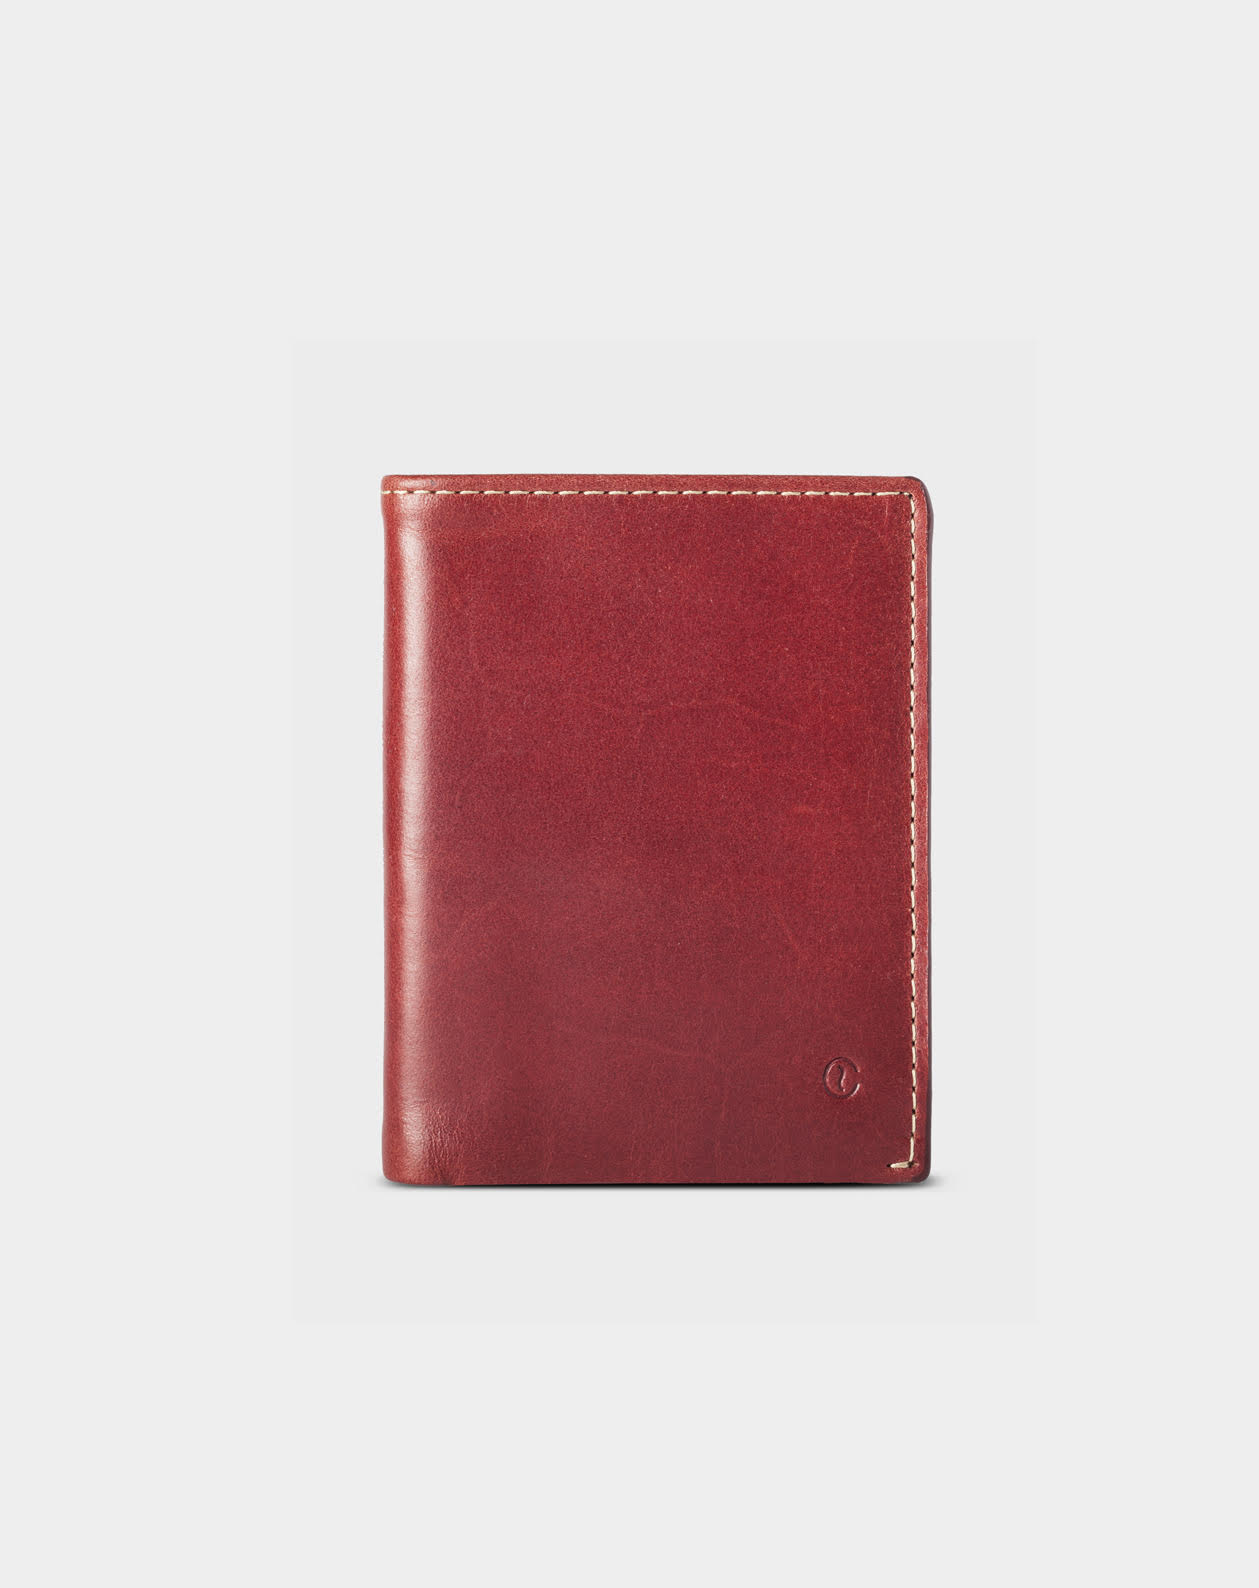 leather slim wallet Costa Rica berry 2